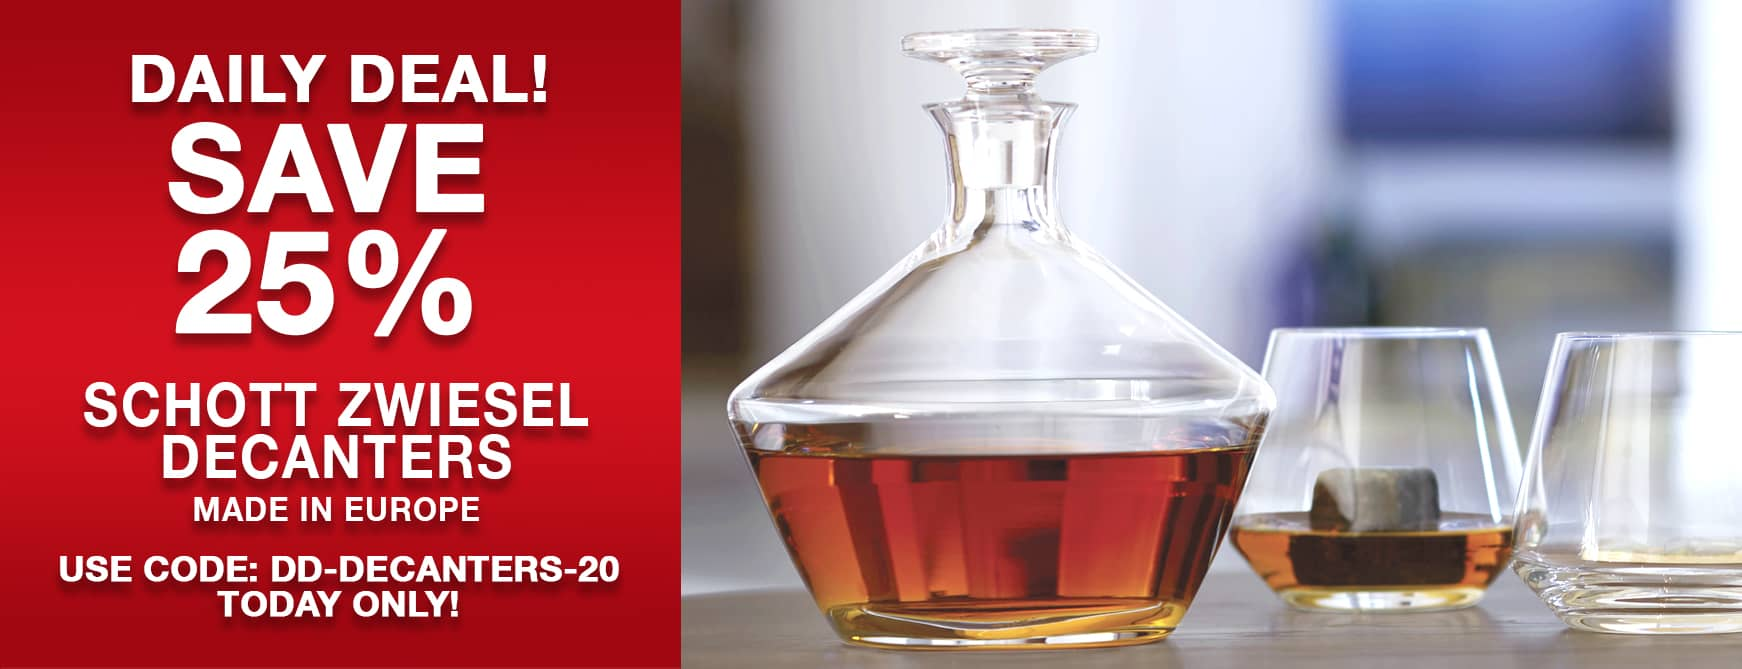 Save 25% on Schott Zwiesel Decanters. Use code DD-DECANTERS-20 today only!